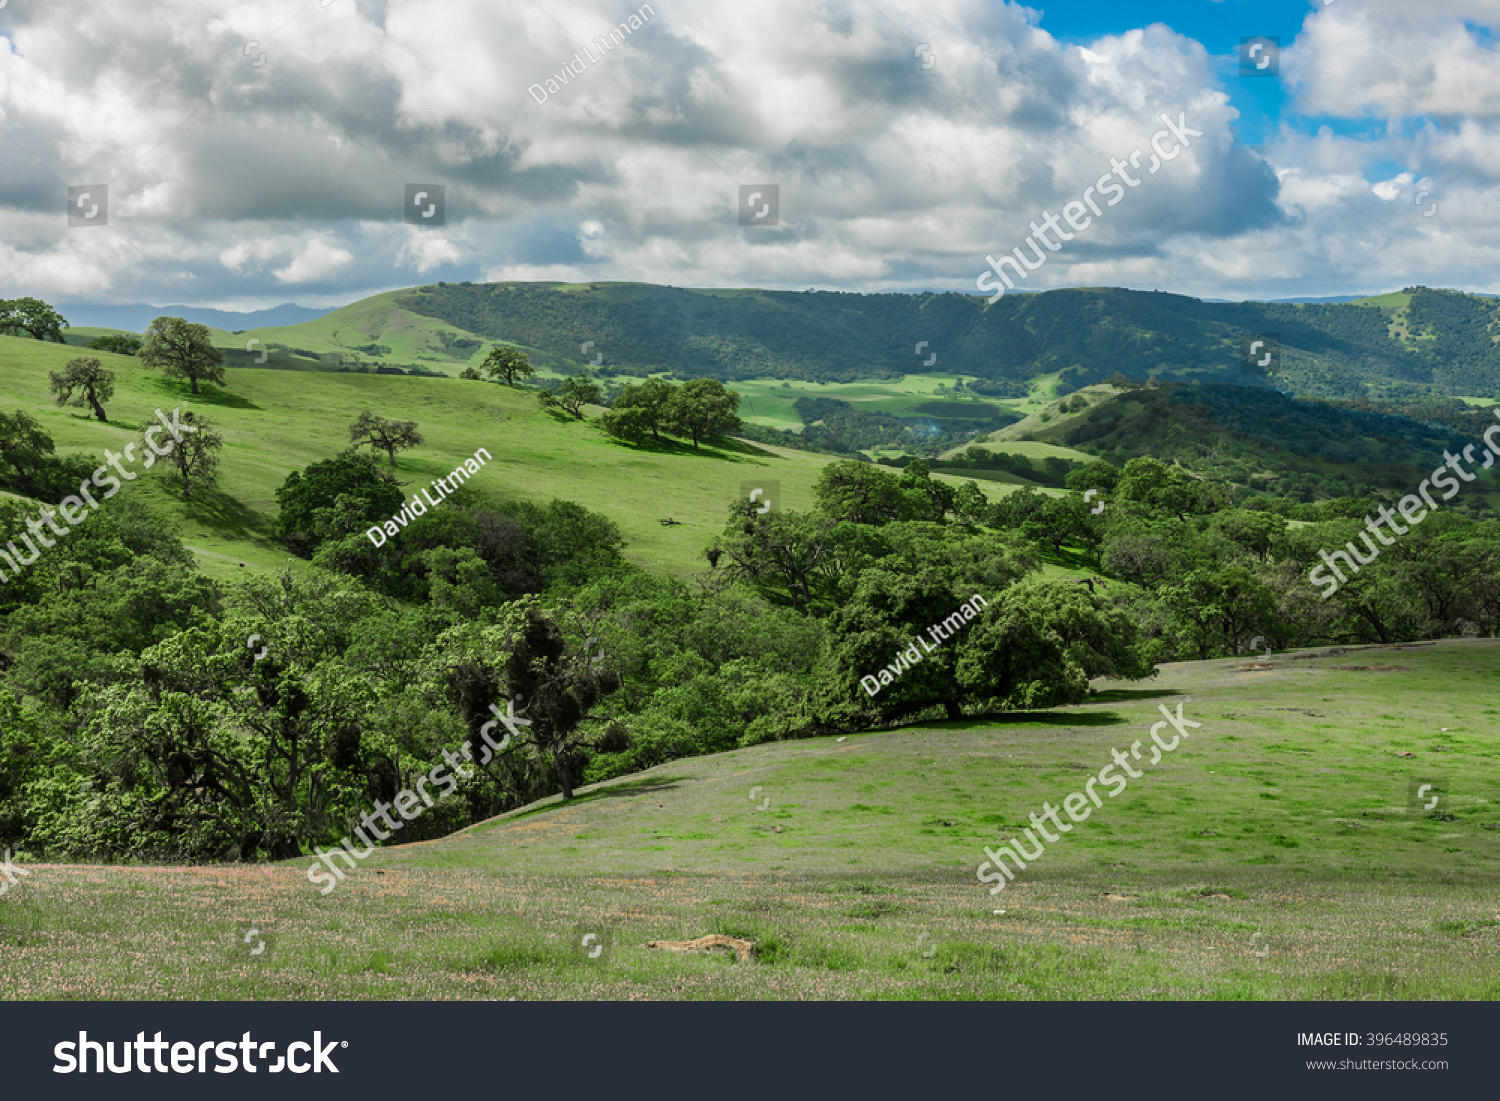 A scenic panoramic view of rolling grass covered hills with coastal live oak trees in Carmel Valley, Monterey County, California, with clearing clouds as a storm passes by.